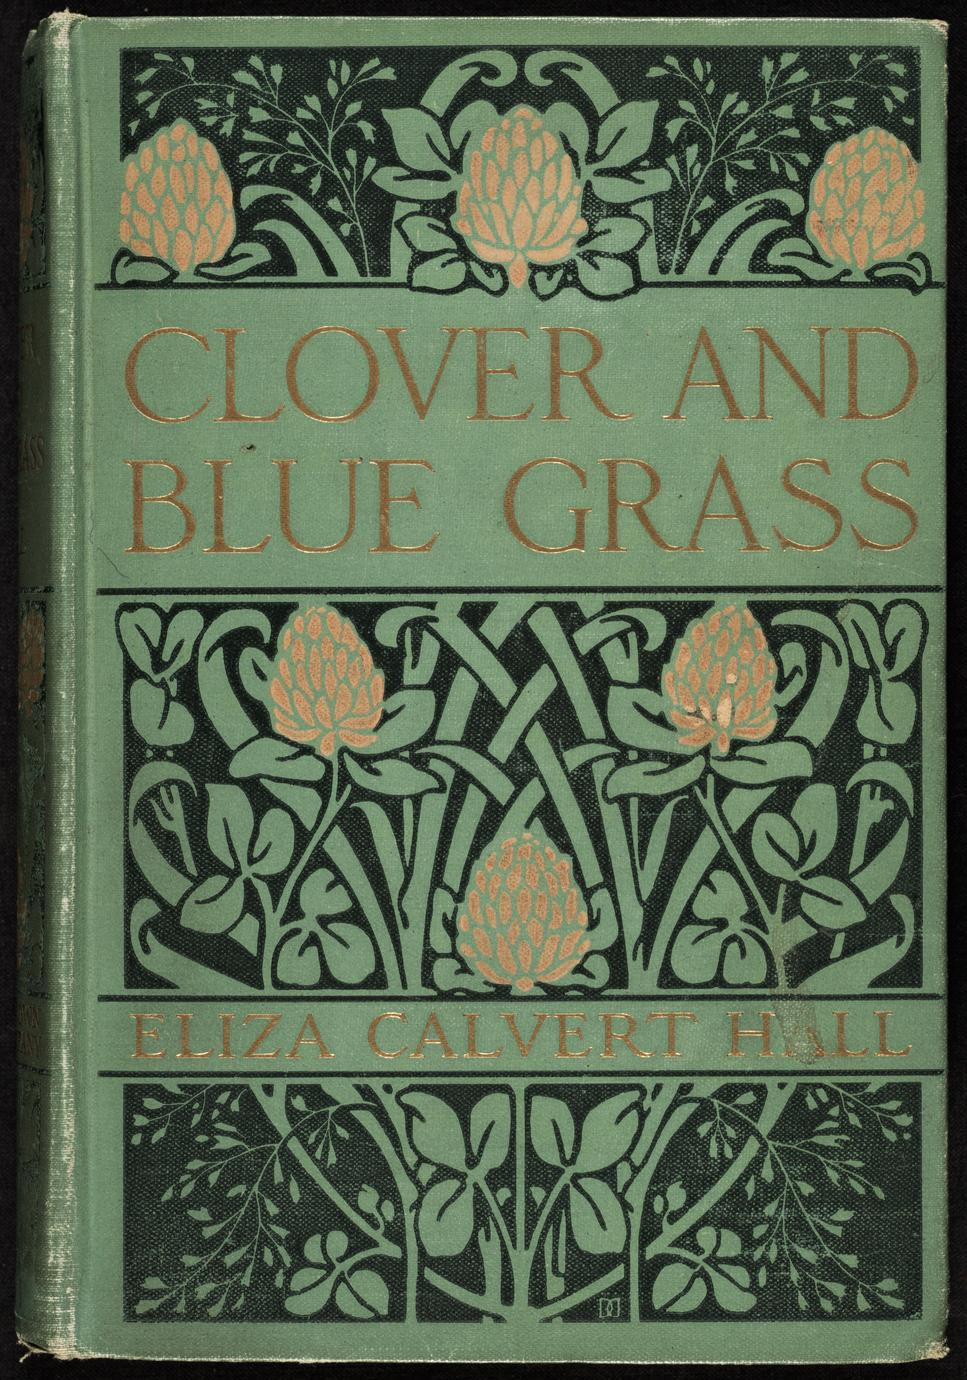 Clover and blue grass (1 of 3)